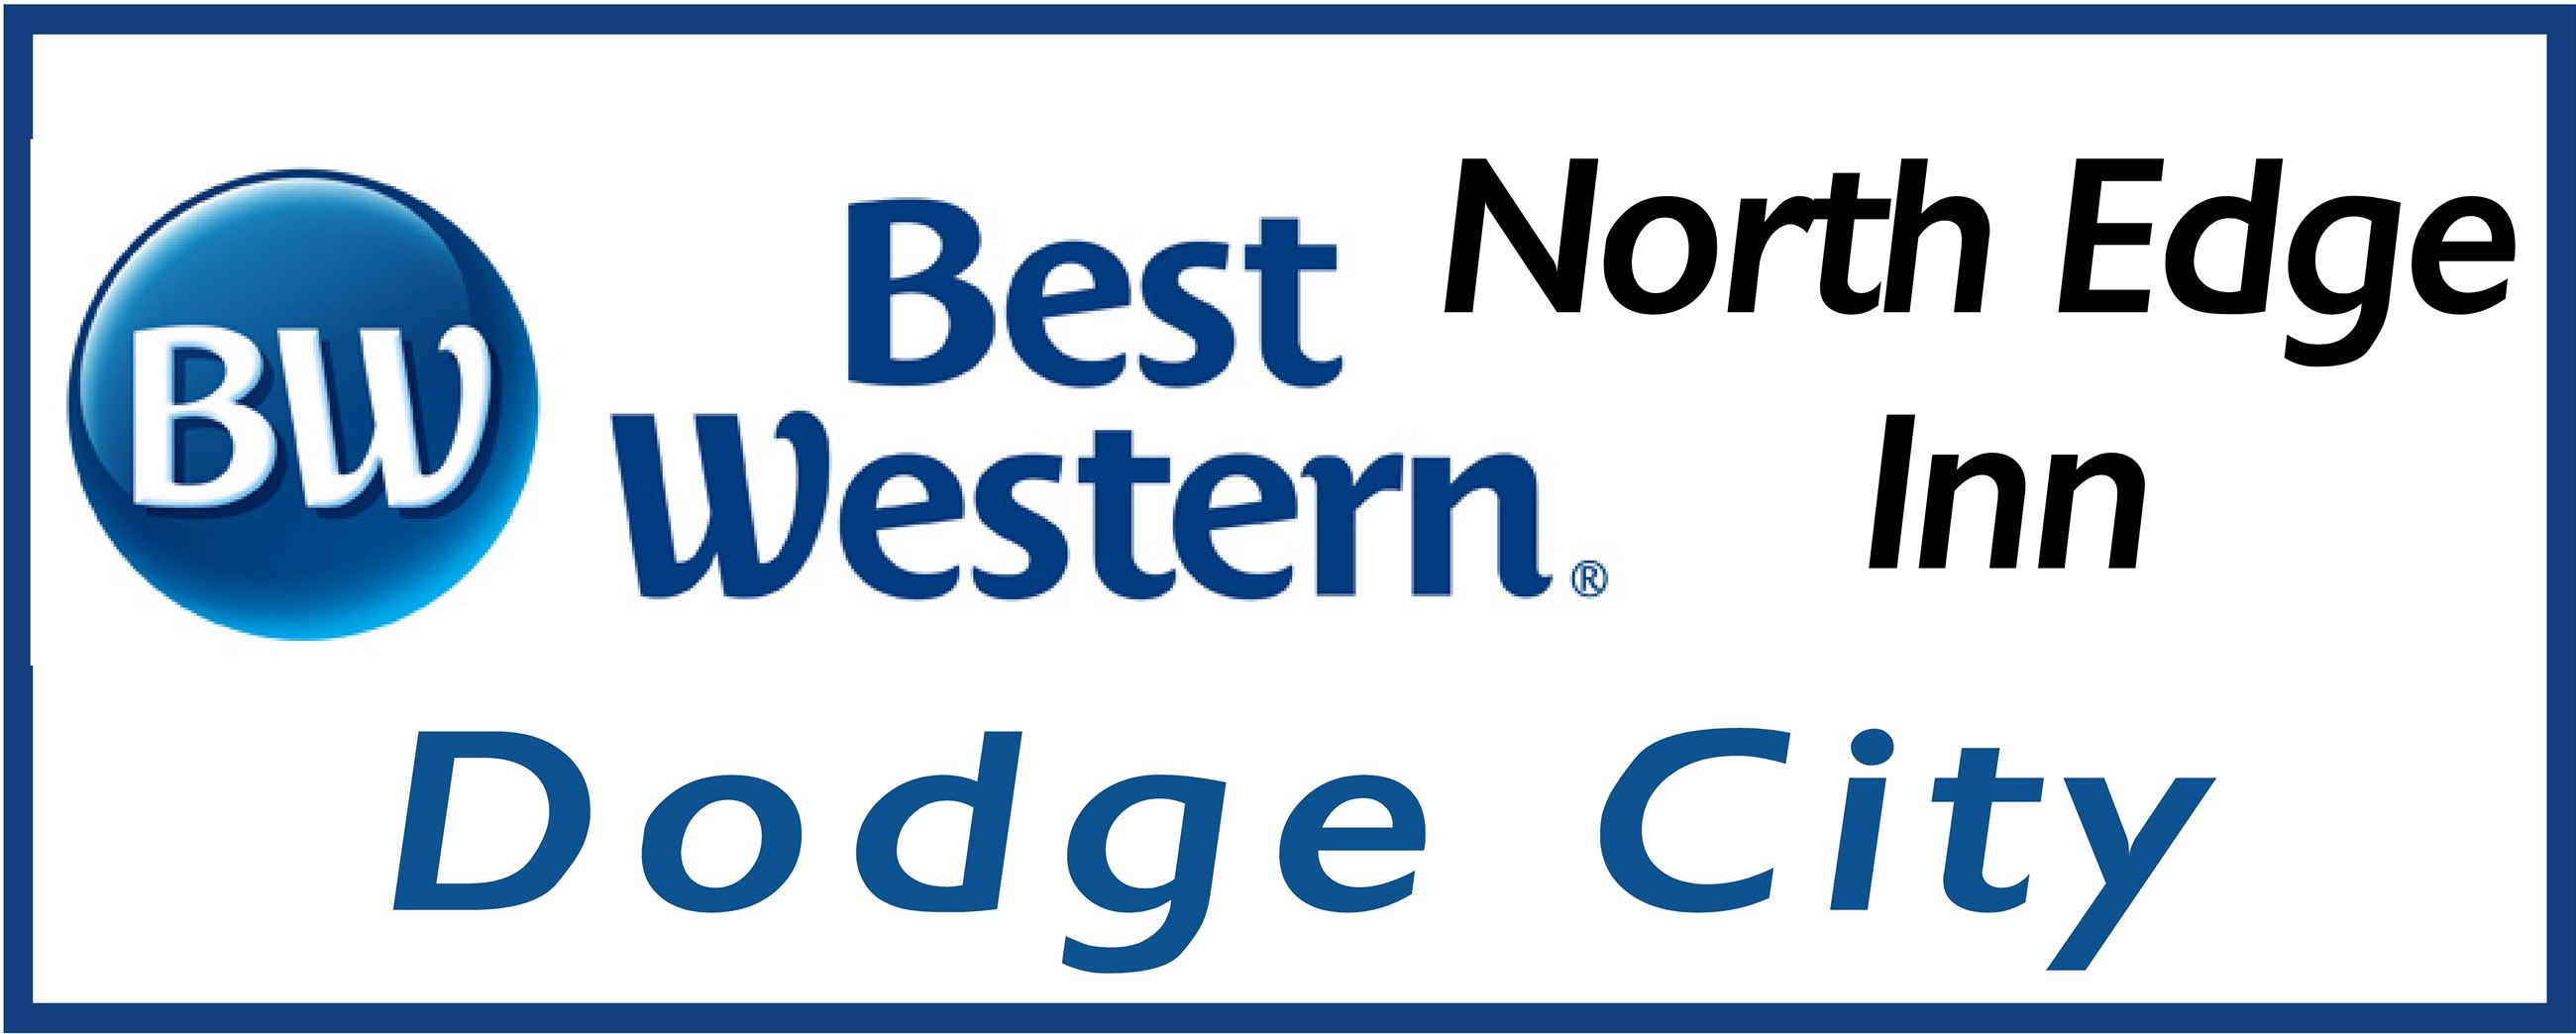 Best western north edge